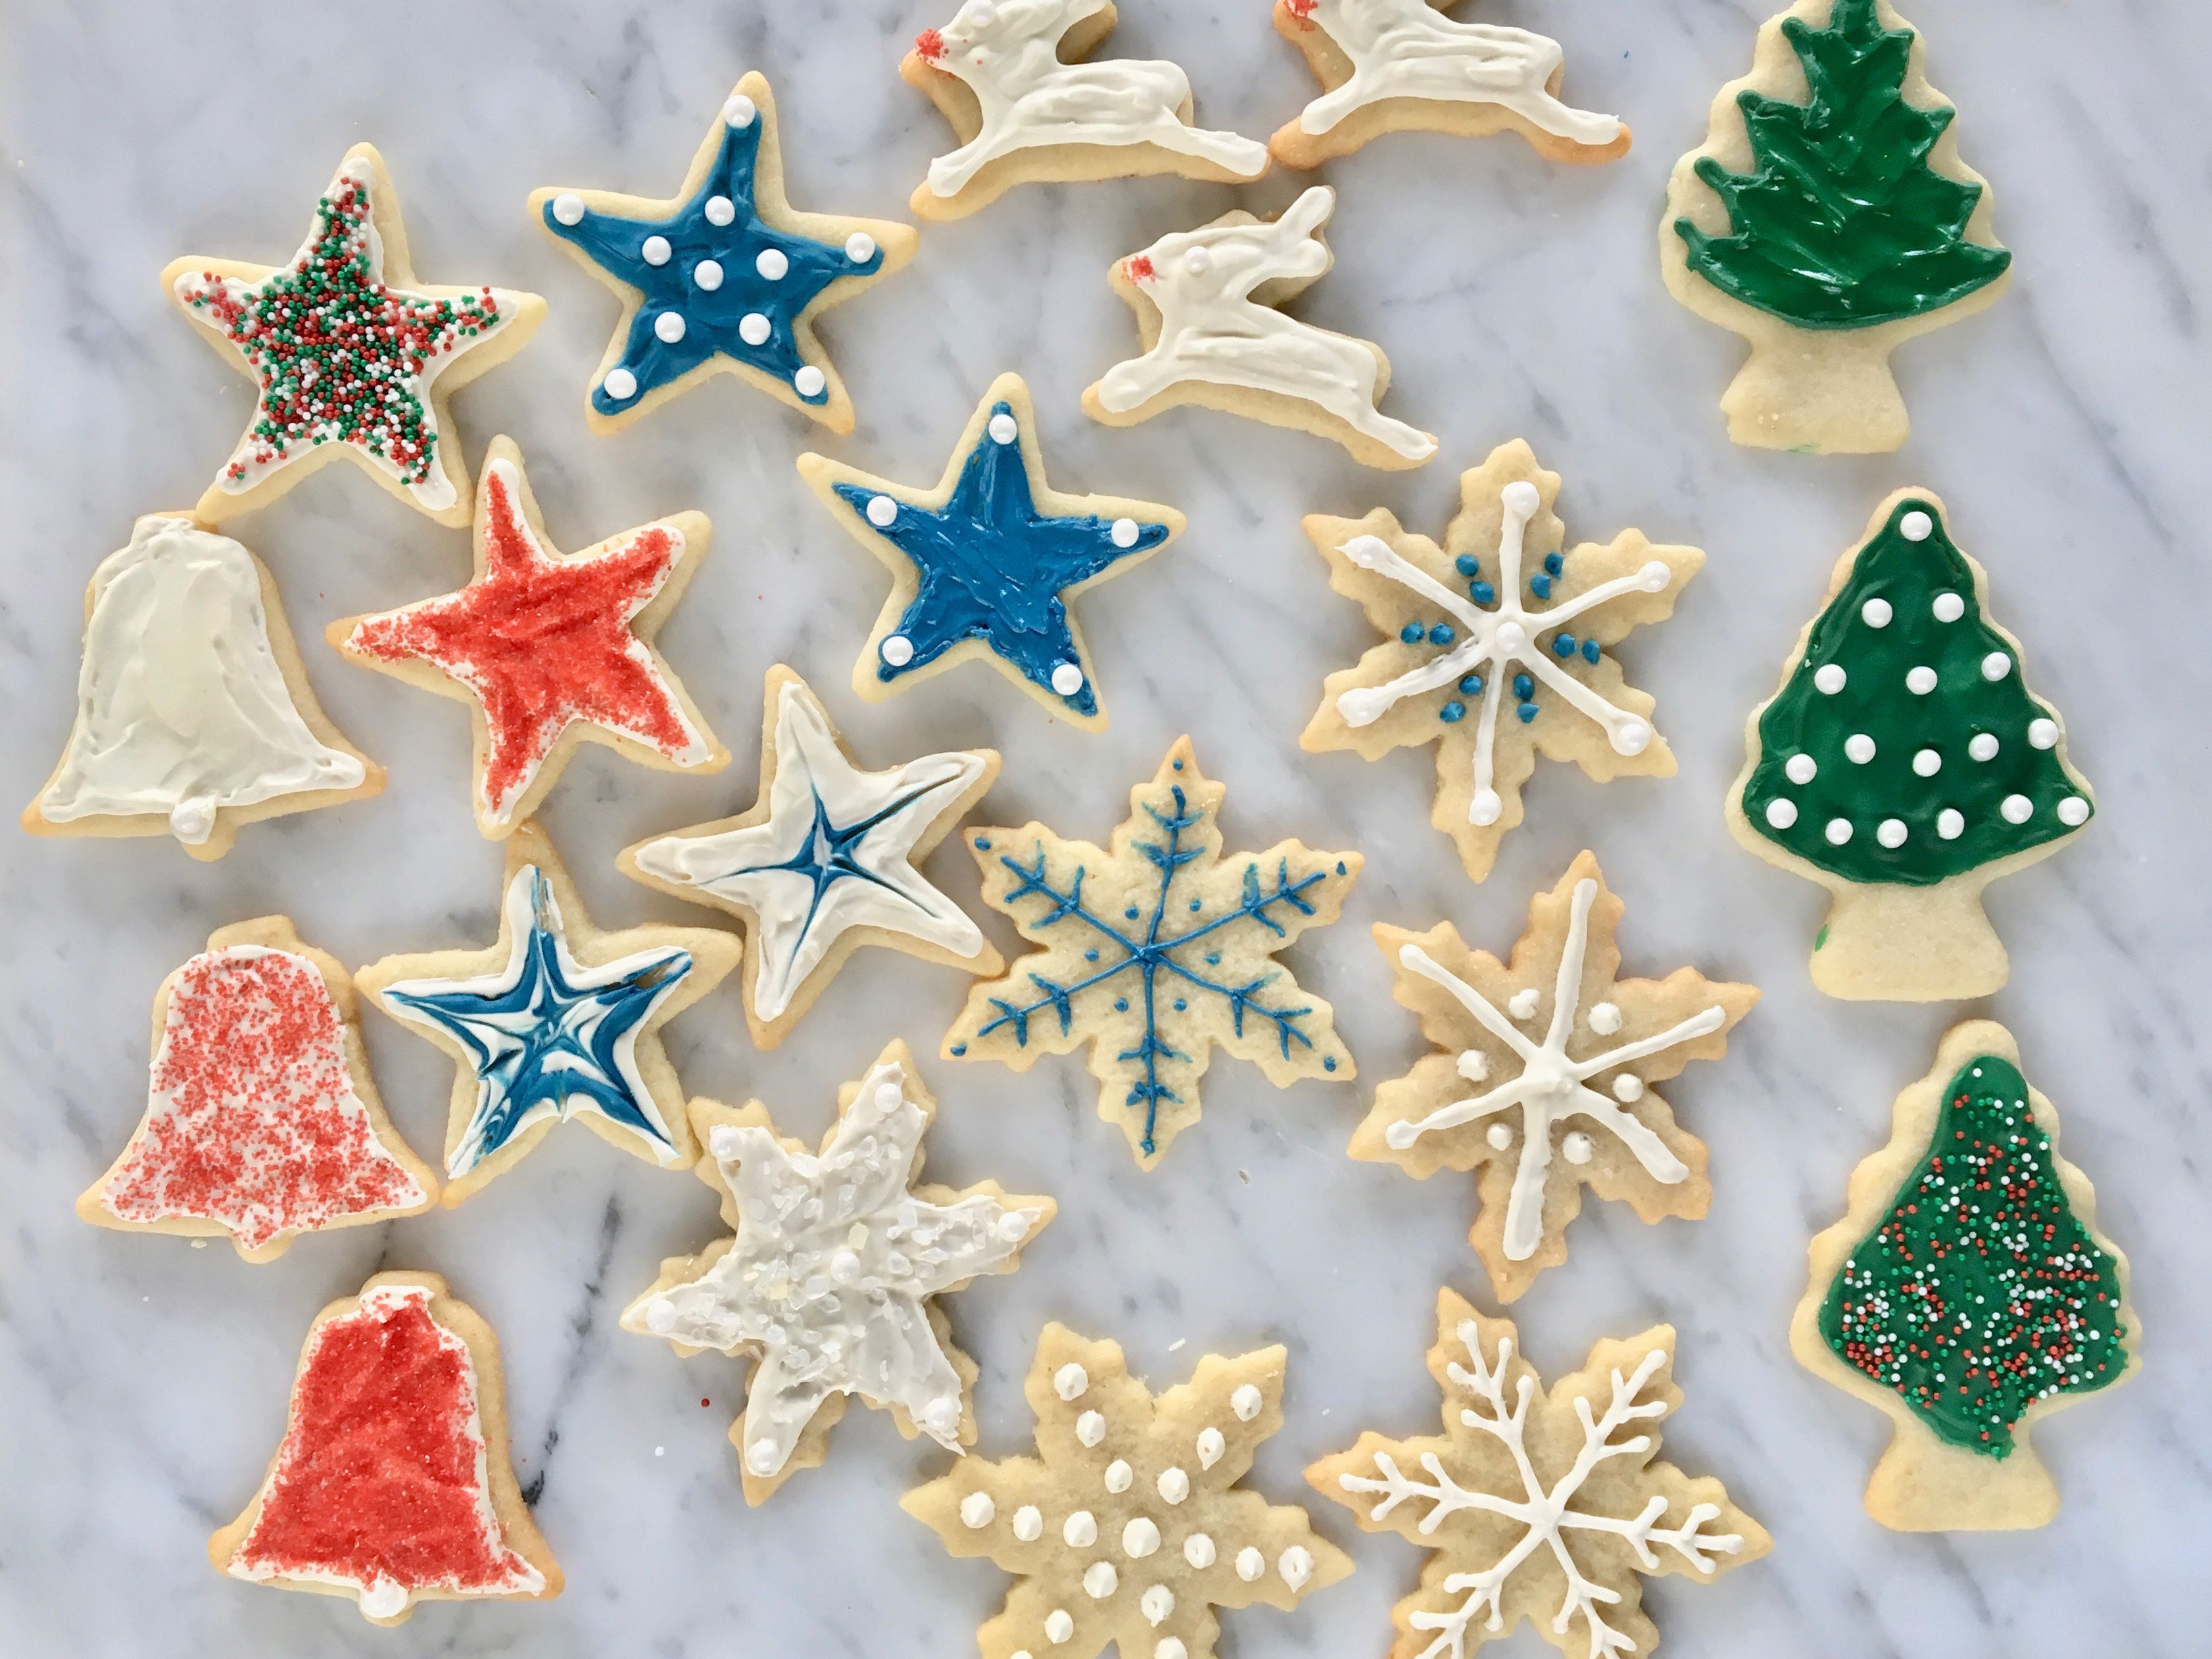 Decorating Christmas Cookies.Christmas Cookie Decorating Step By Step